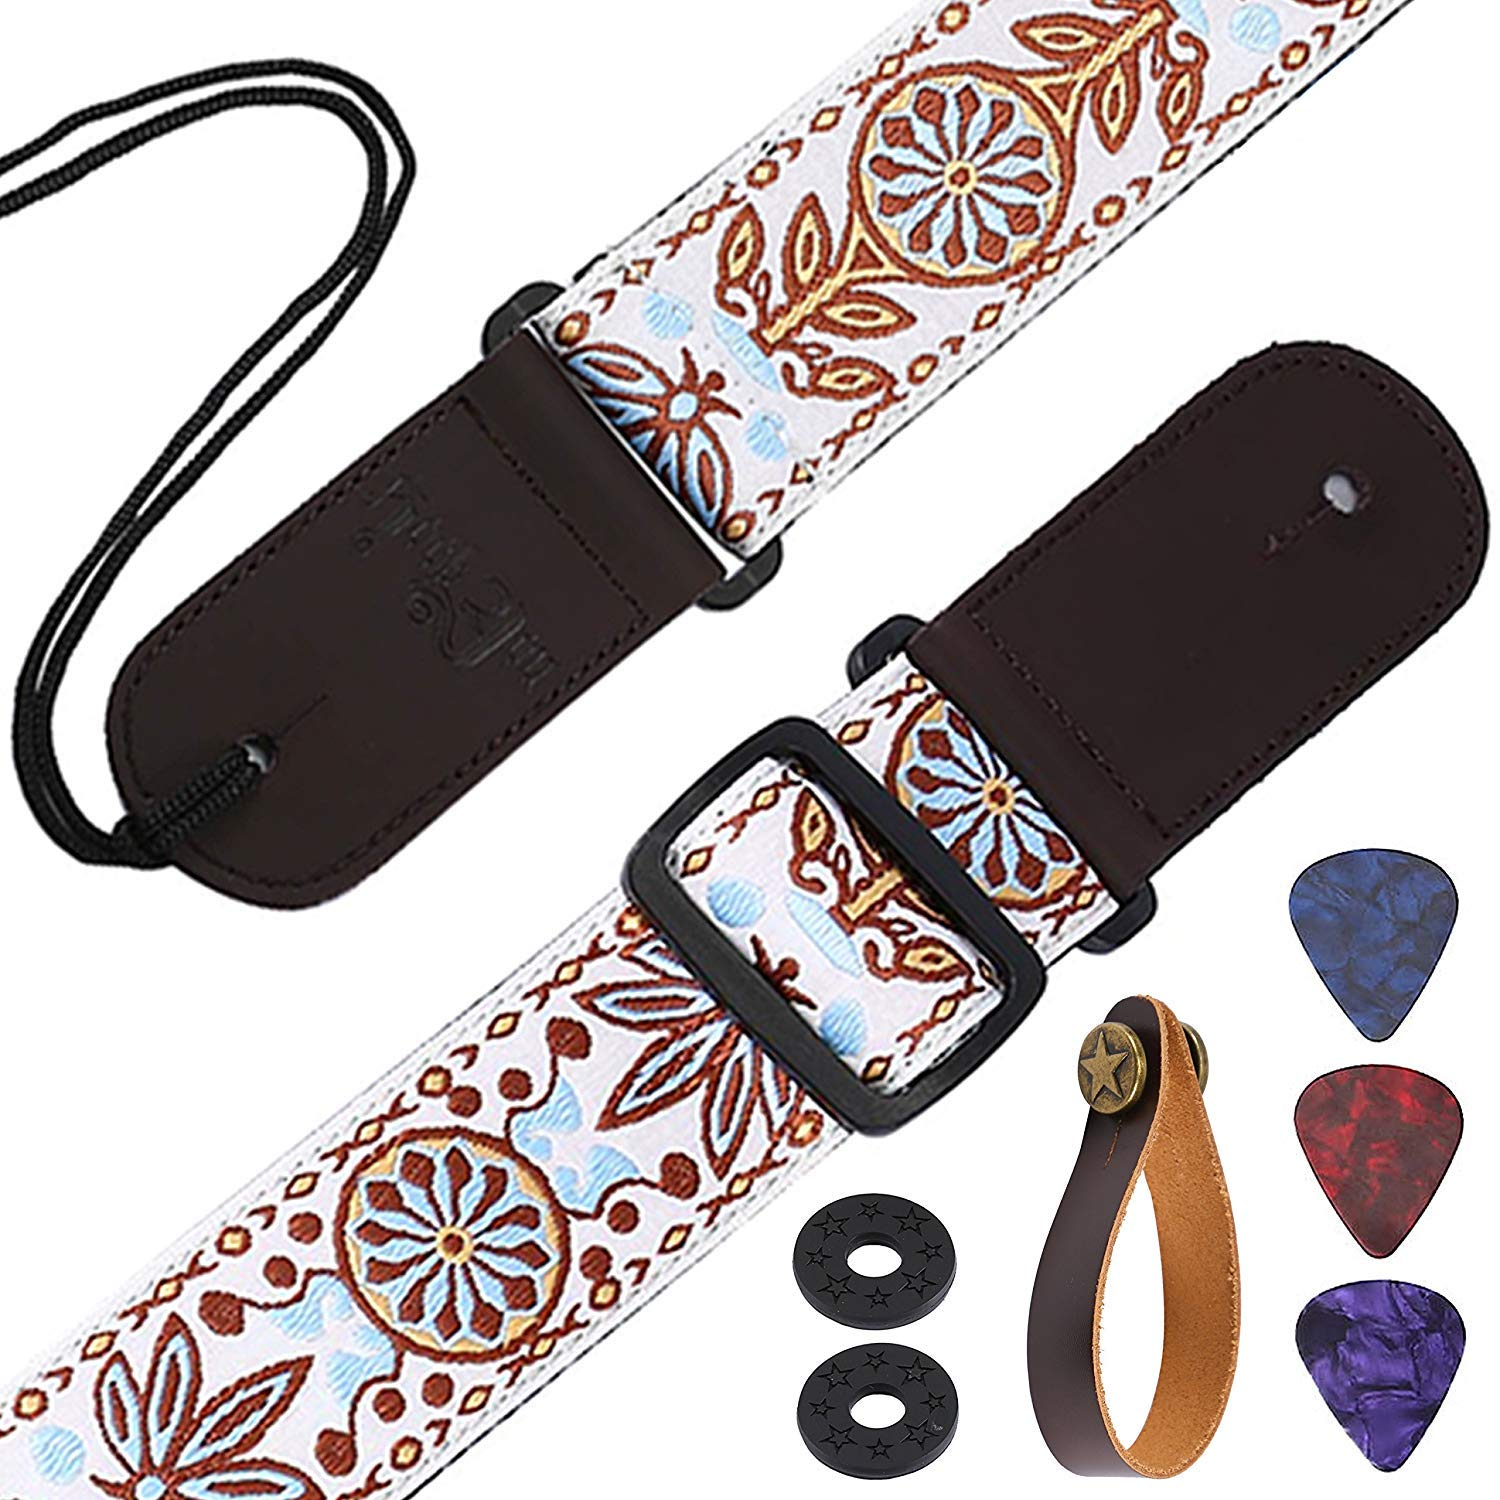 """Guitar Strap 5cm/2"""" Width Leather Ends and Leather Strap Hooks Sun Flower Jacquard Vintage Woven Guitar Shoulder Strap with 2 pcs Picks, 2 pcs Guitar Strap Lock for Bass and Guitars Asmuse ACGS-1"""